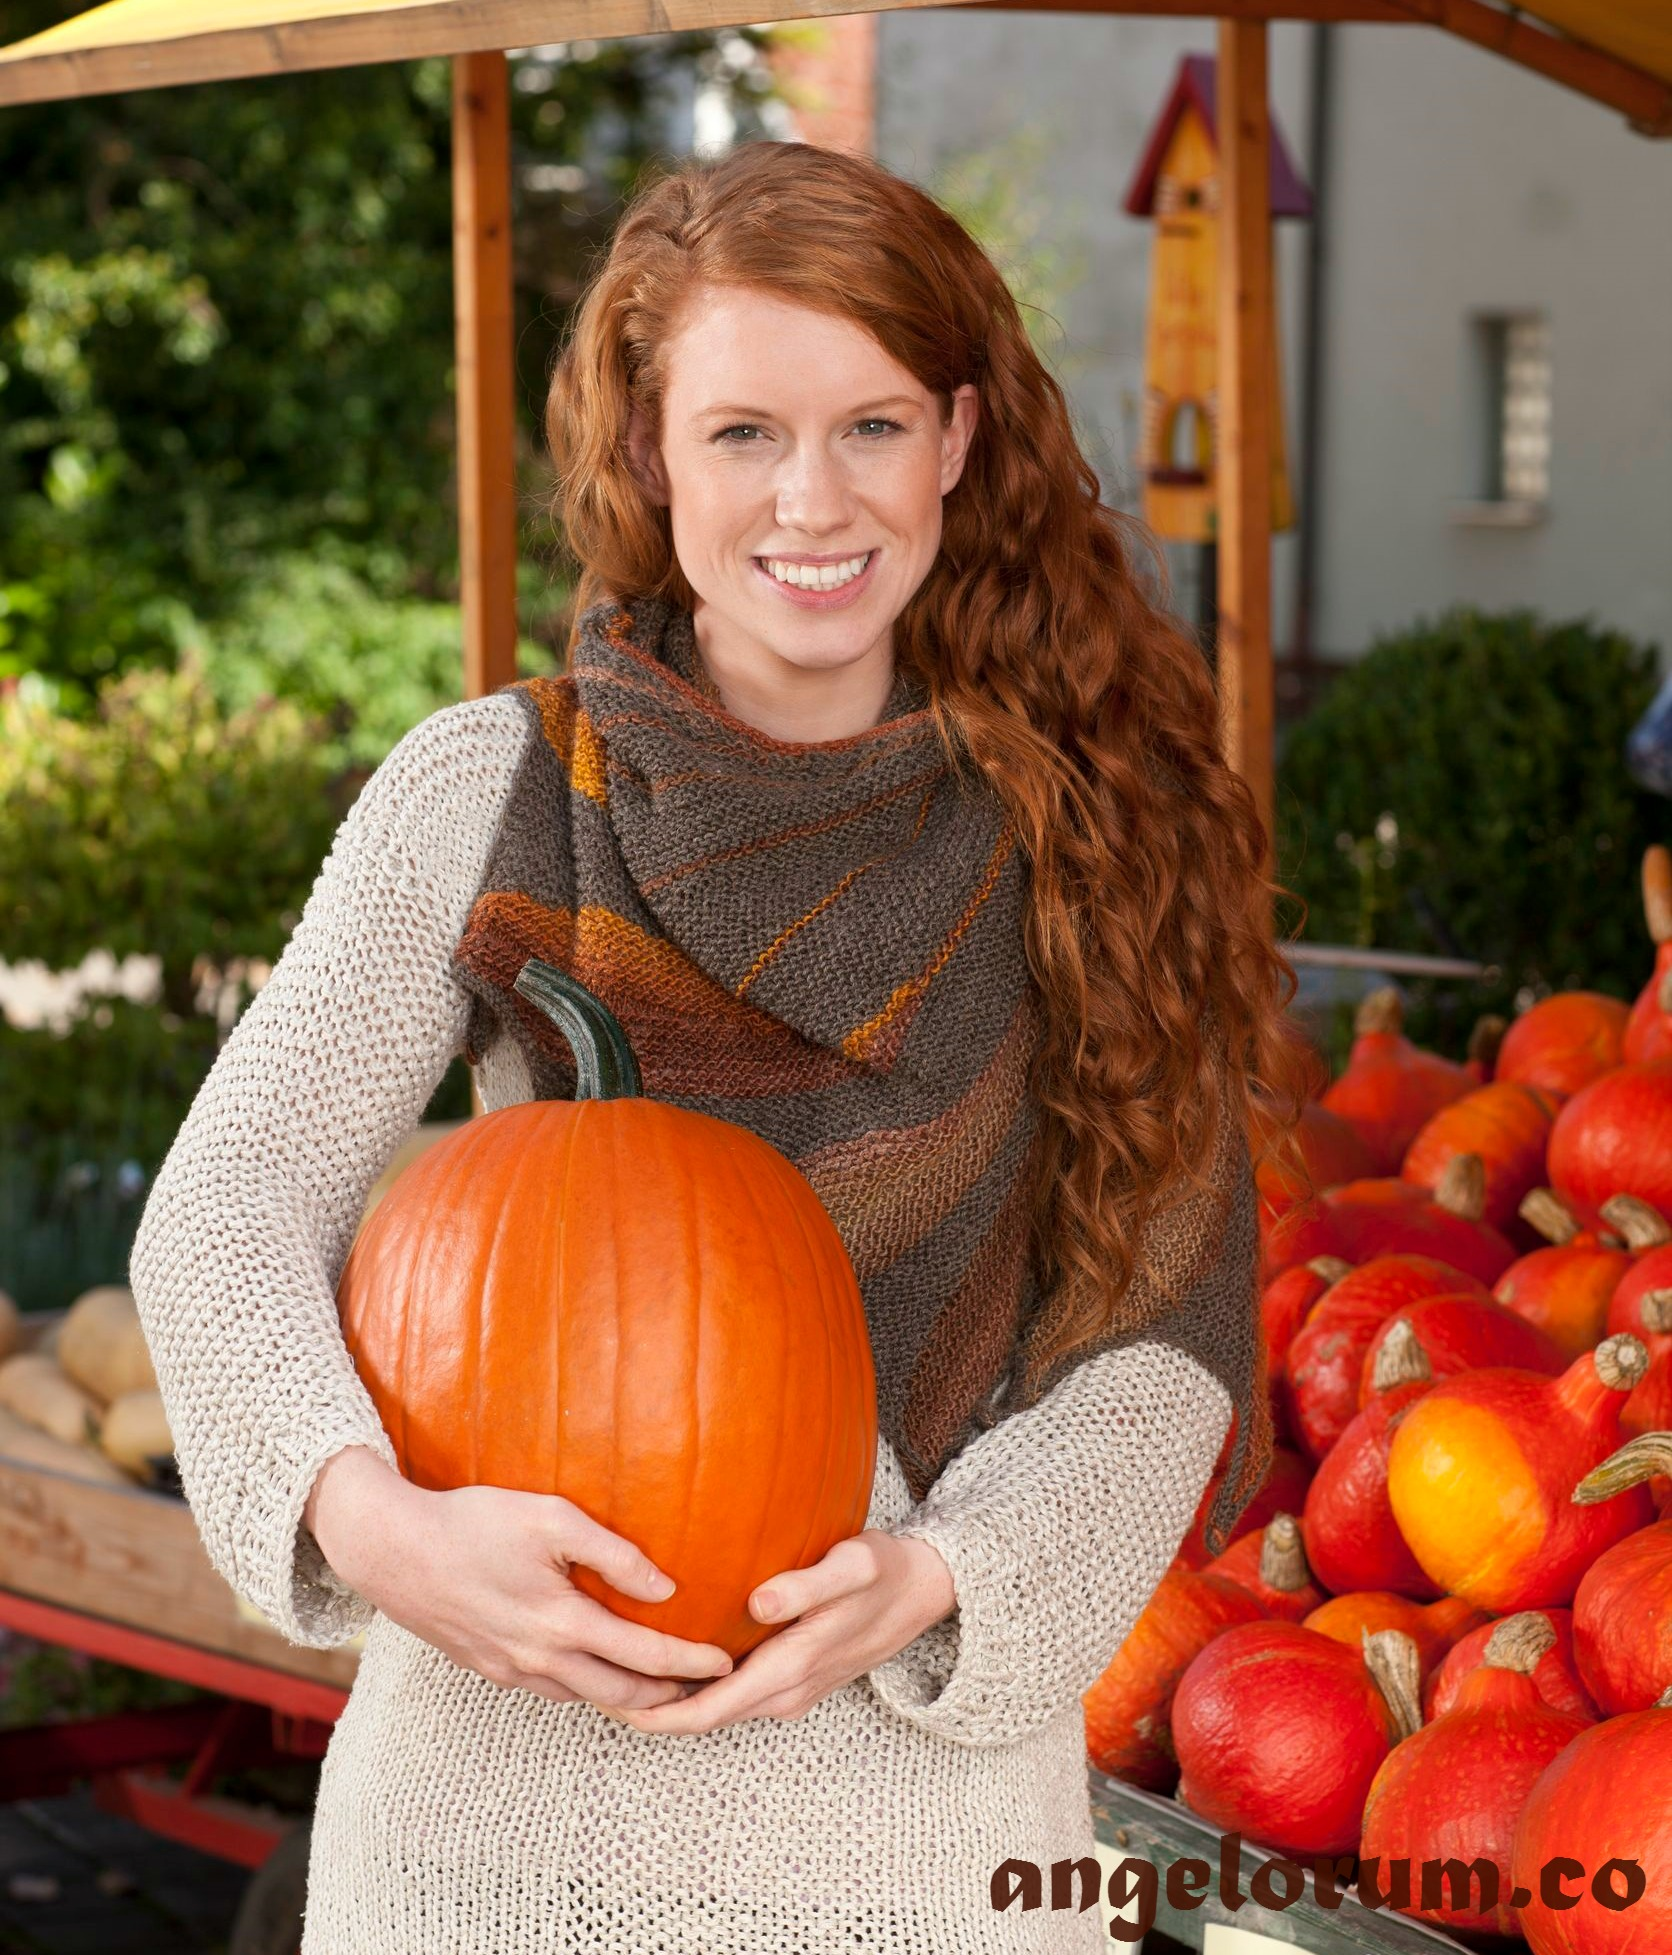 Food Affects Mood - Woman holding pumpkin